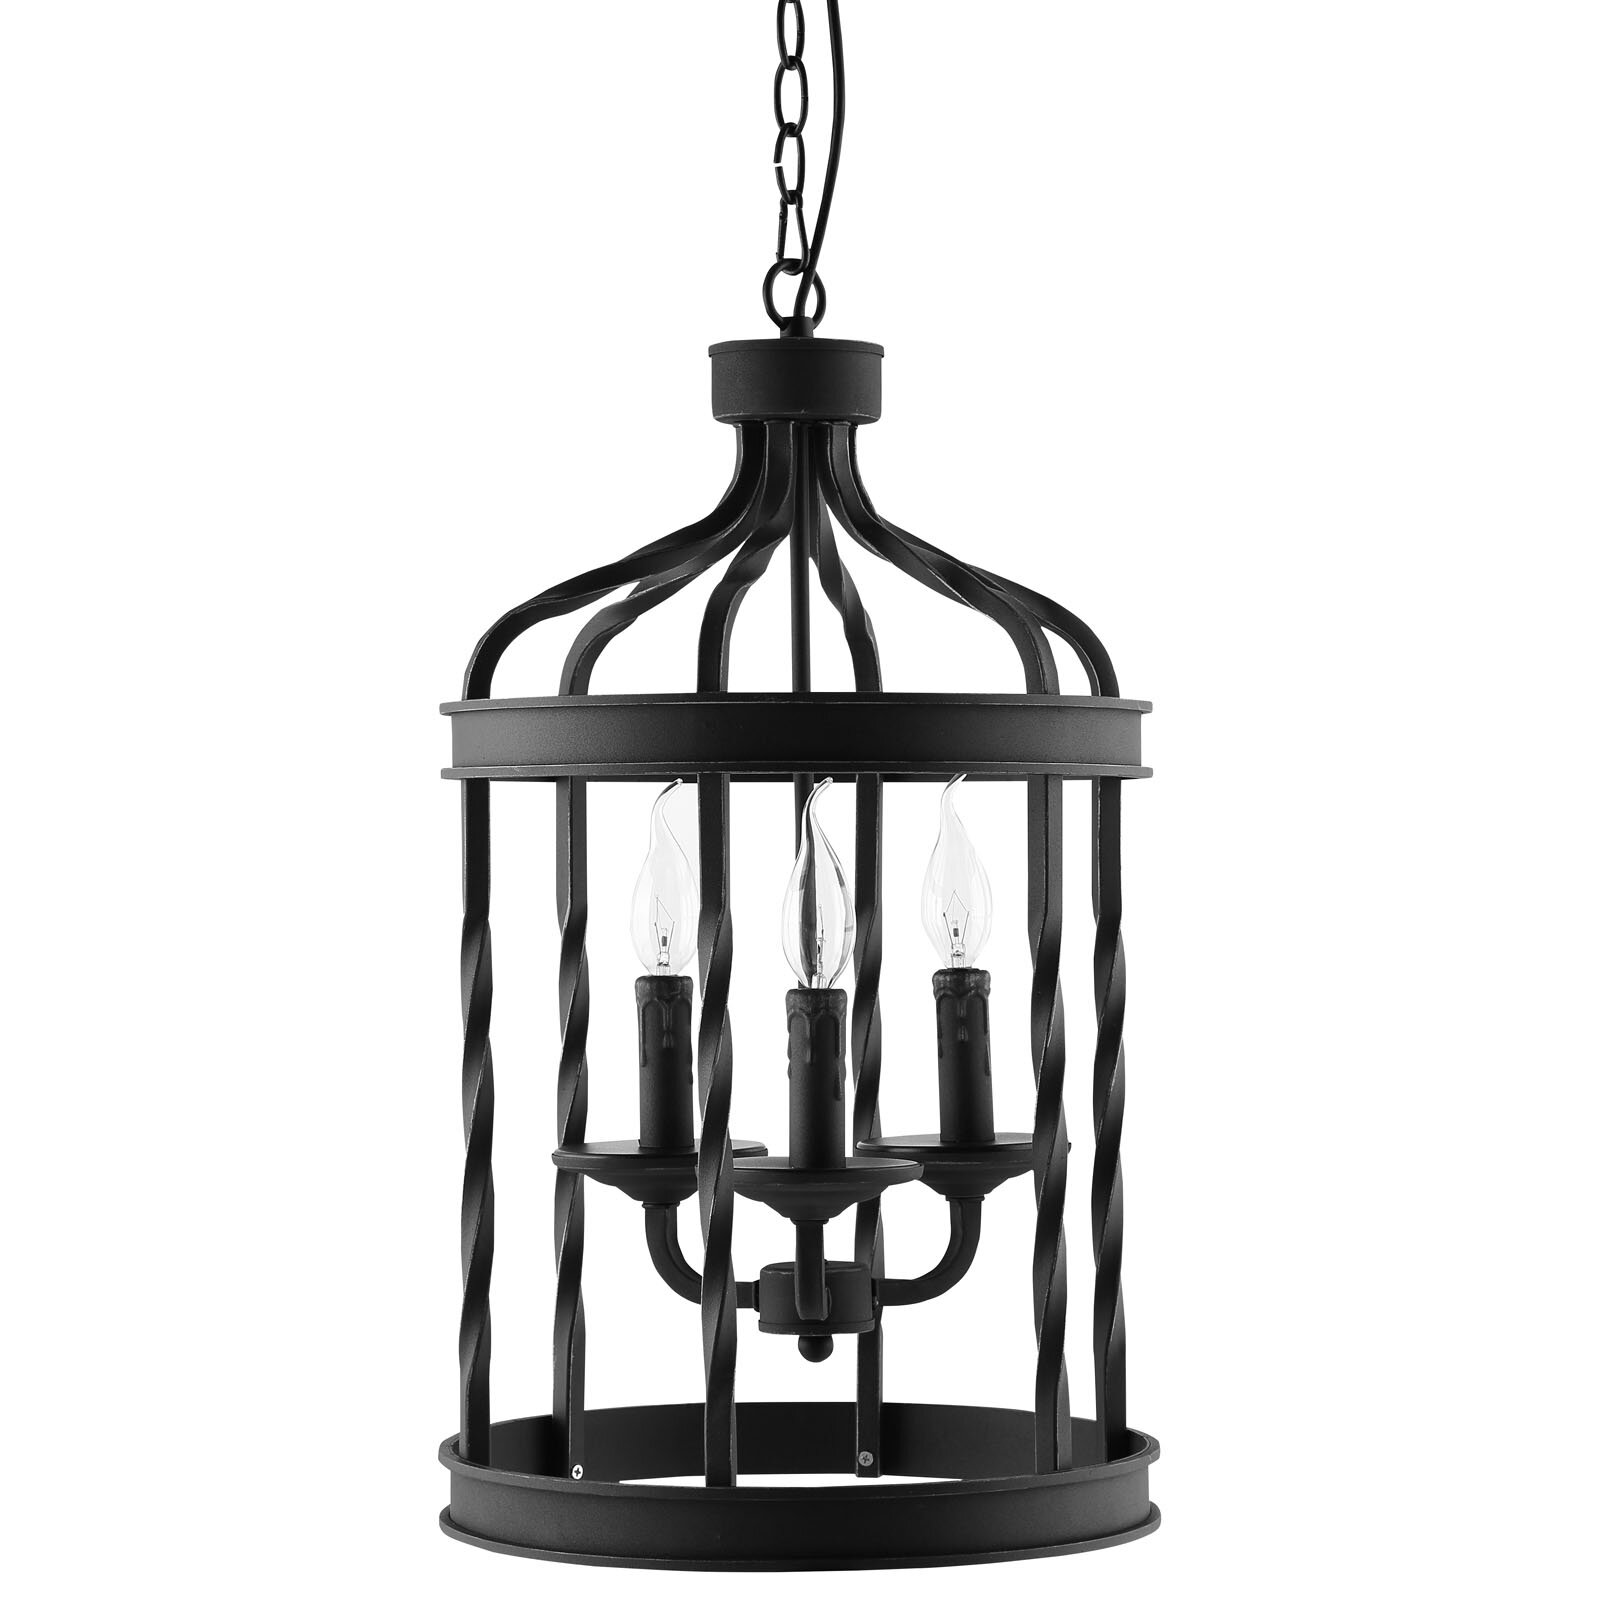 Foyer Lighting Lantern : Modway lantern light foyer pendant reviews wayfair